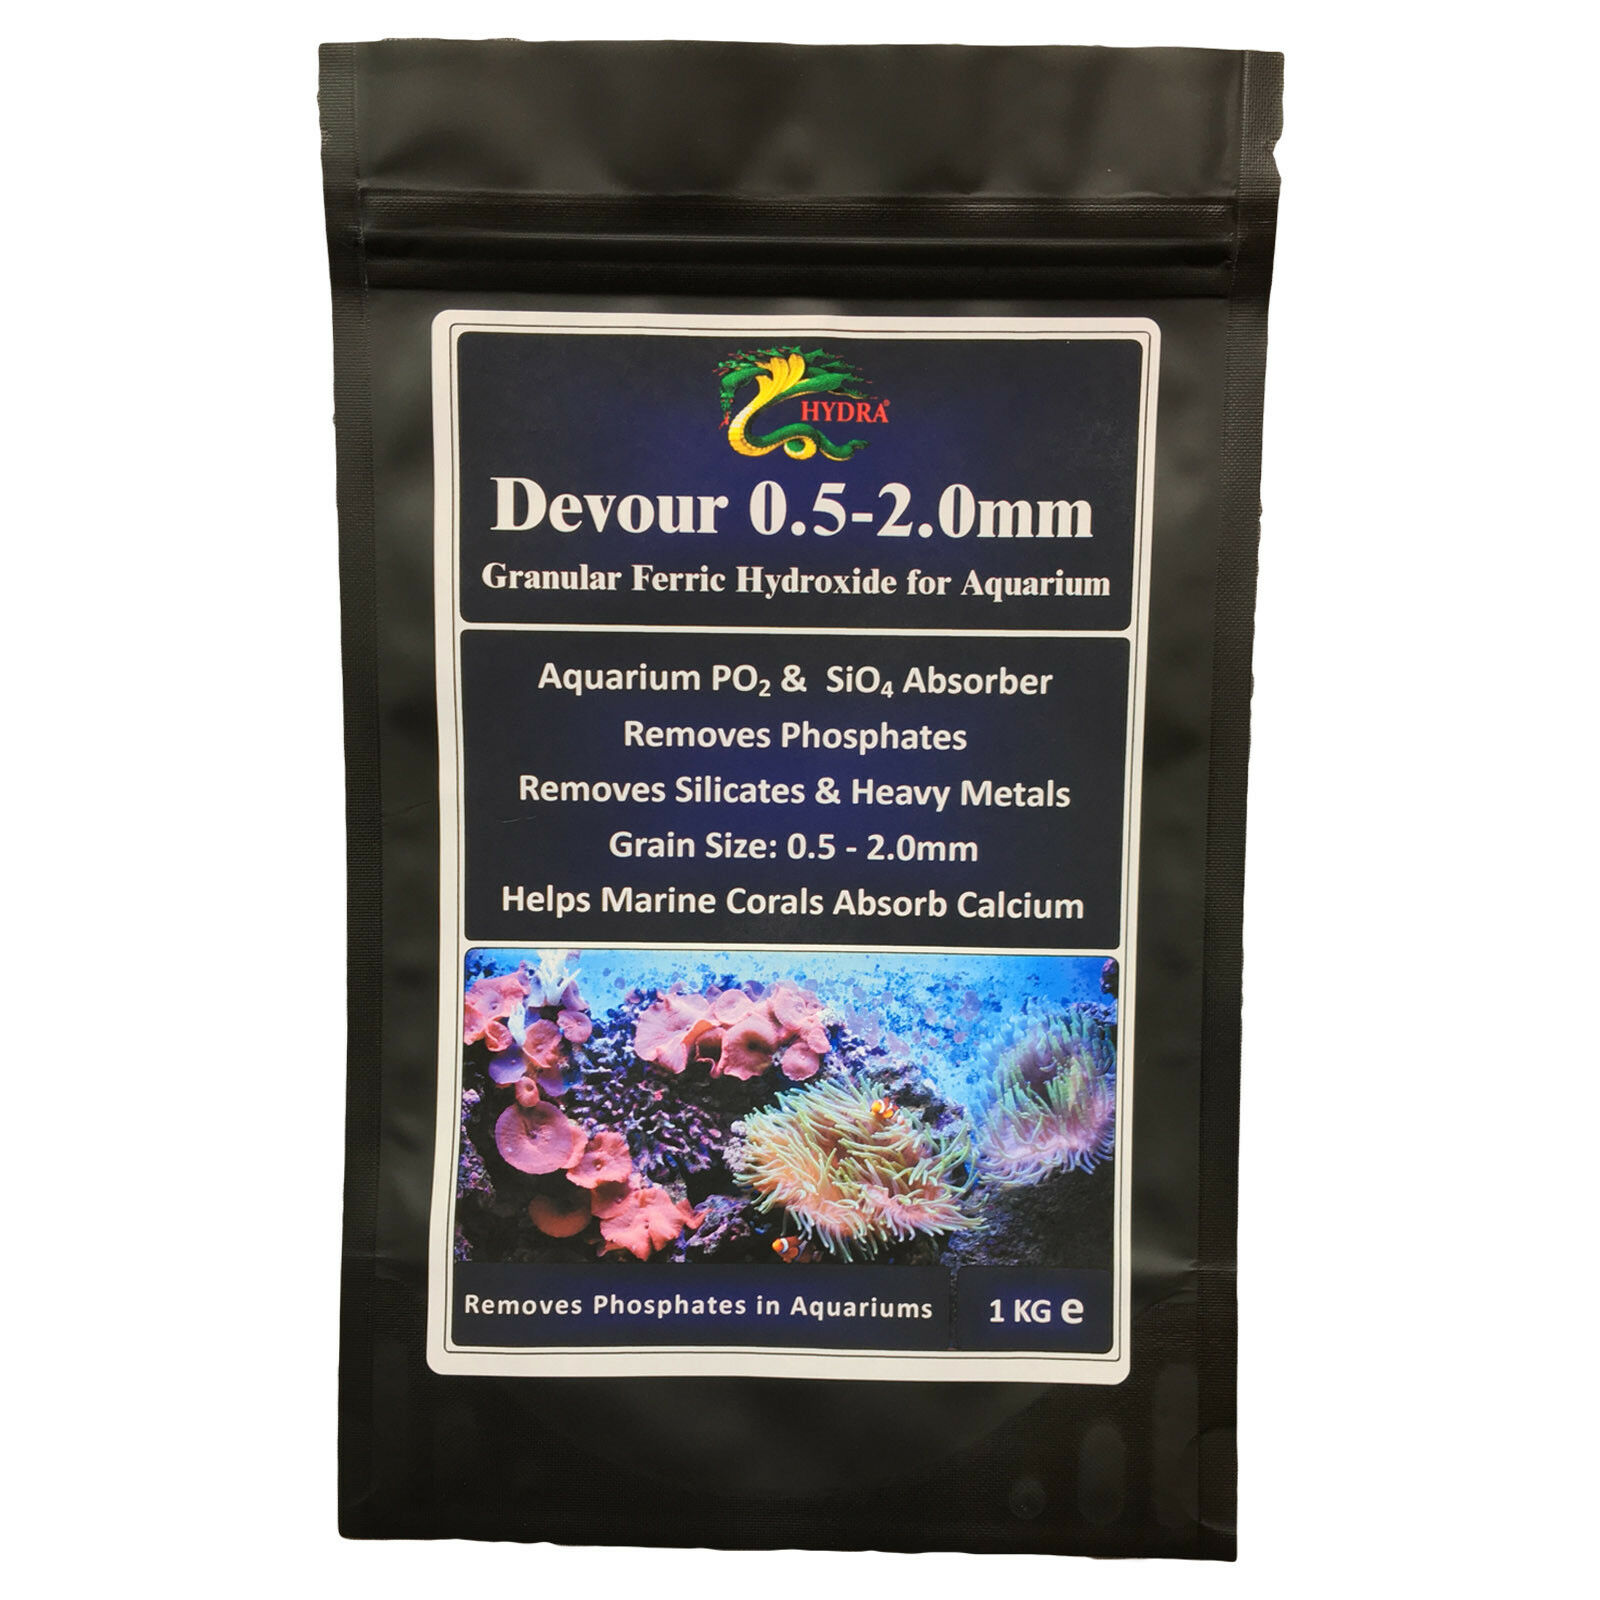 Effective Granulate Aquarium Phosphate & Silicate Remover/ Absorber HYDRA DEVOUR